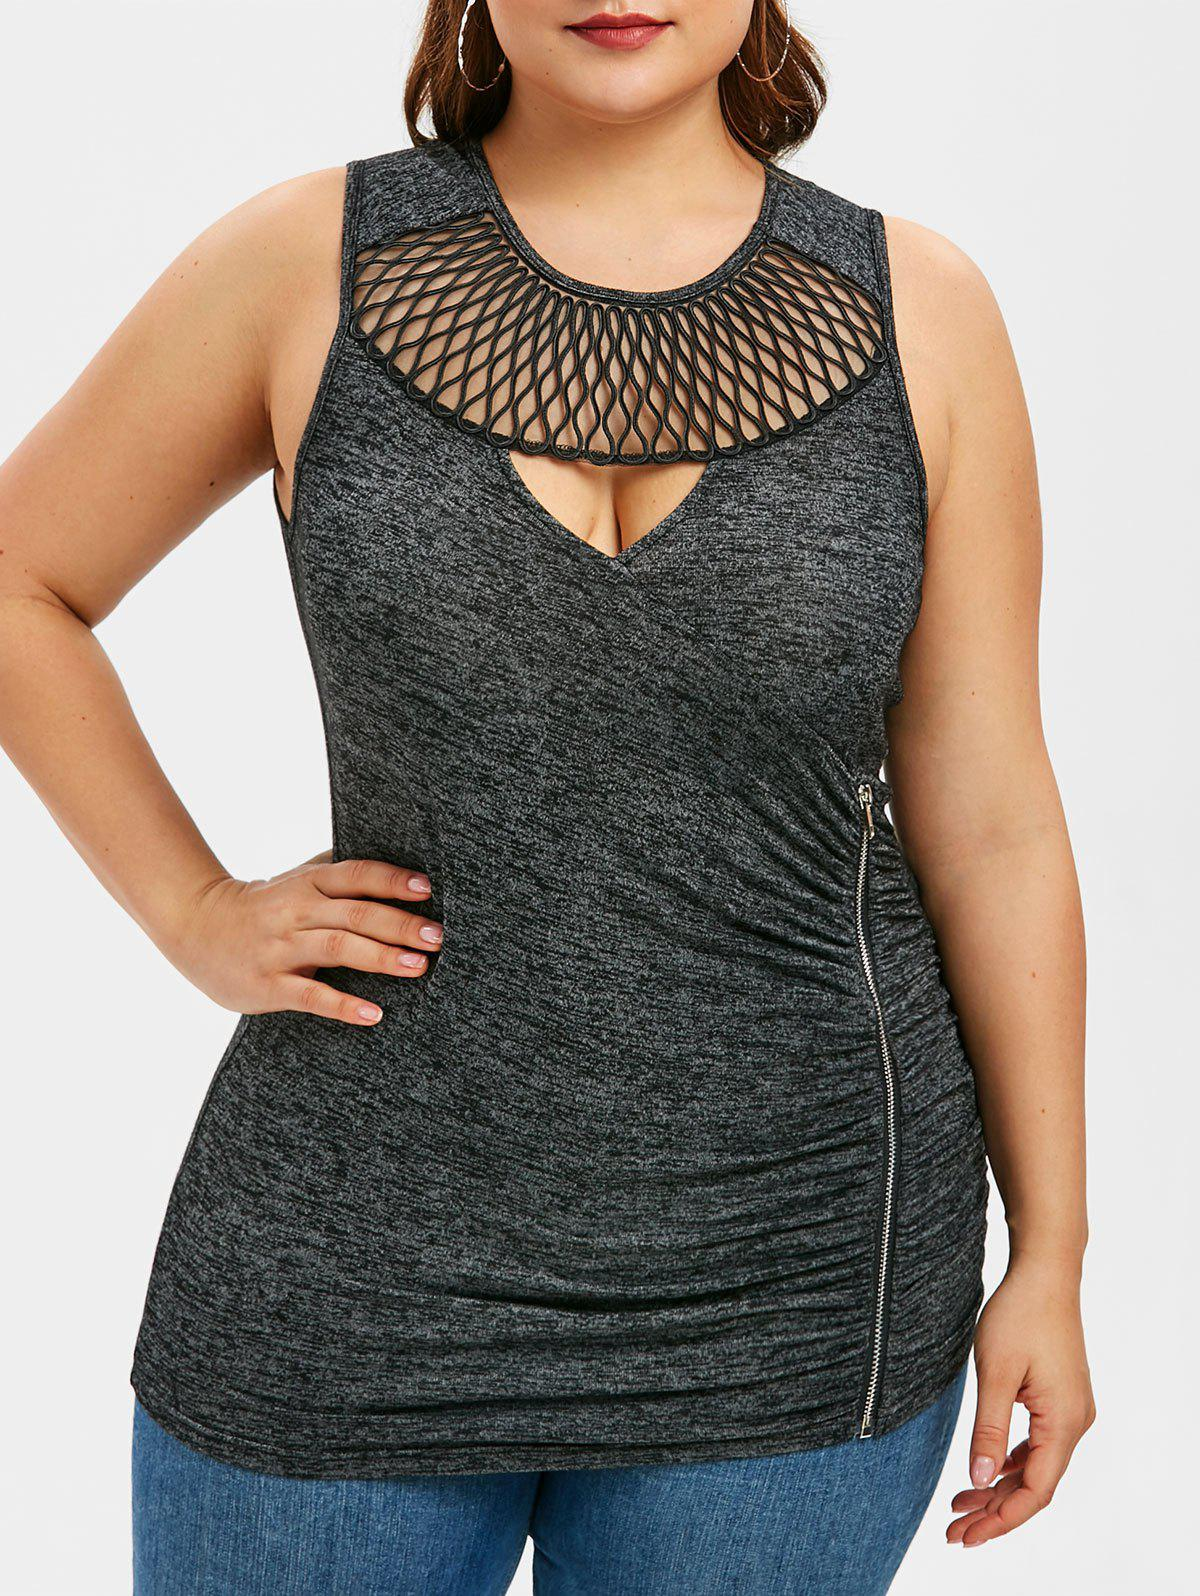 Chic Cut Out Ruched Zipper Plus Size Tank Top